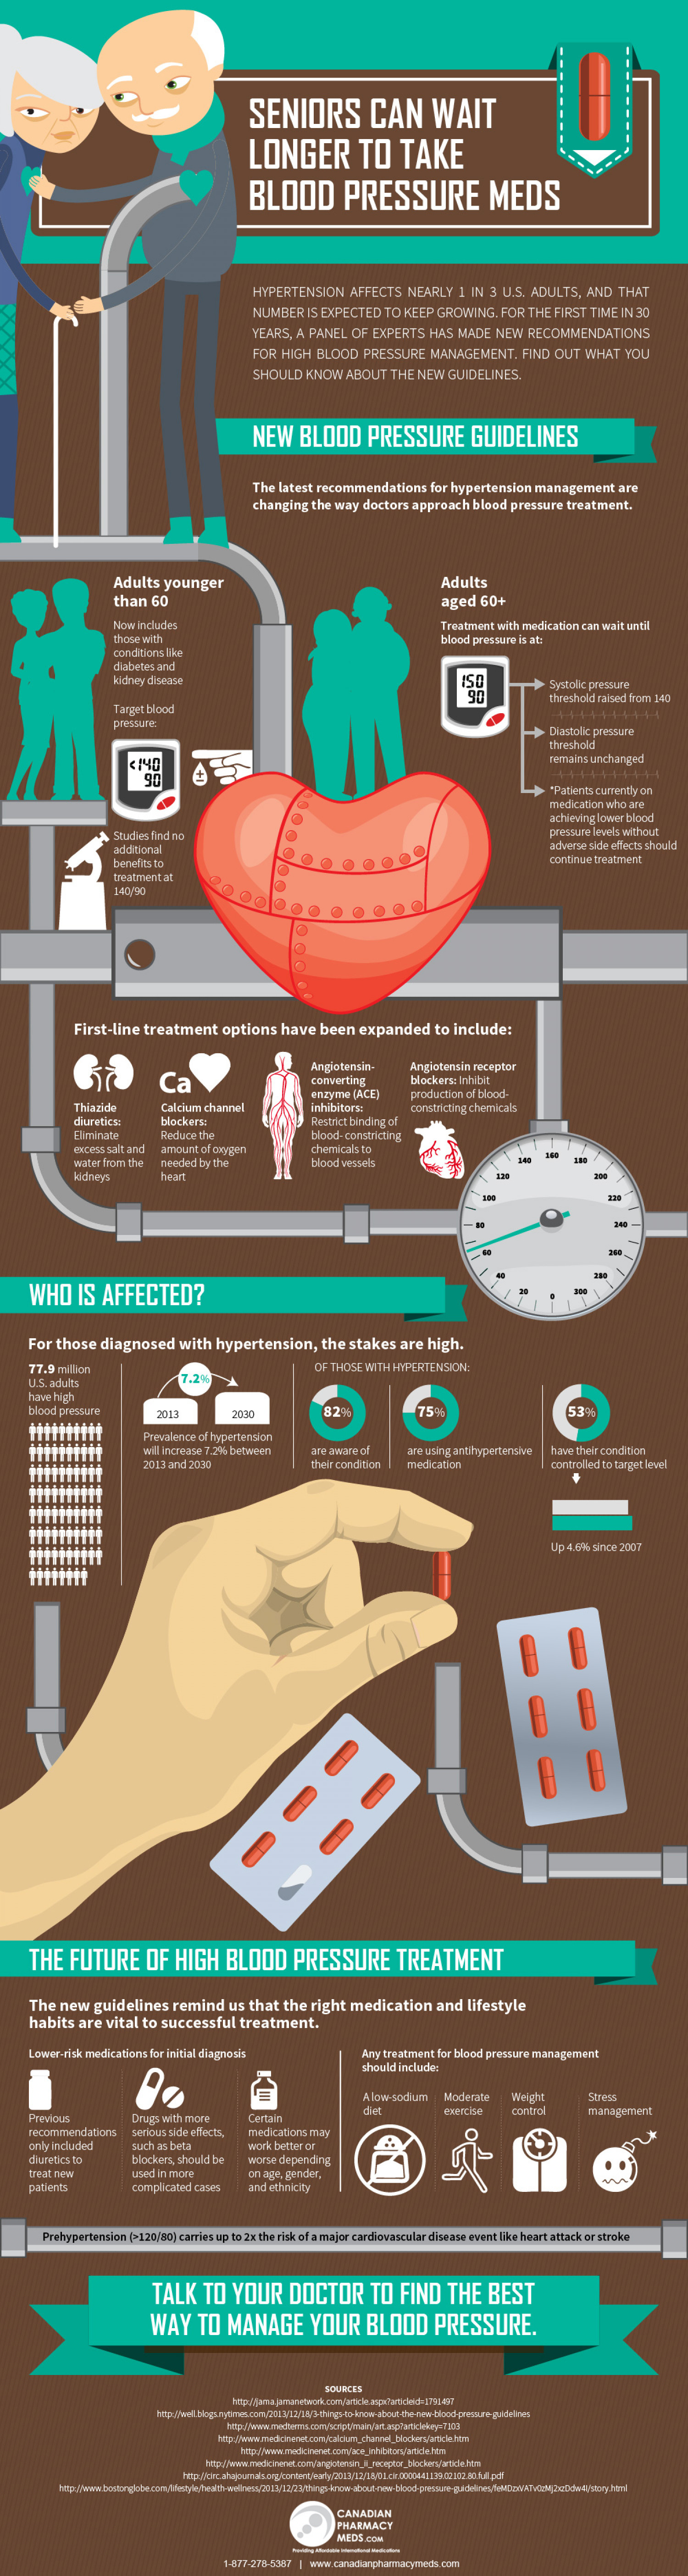 Seniors Can Wait Longer To Take blood Pressure Meds Infographic